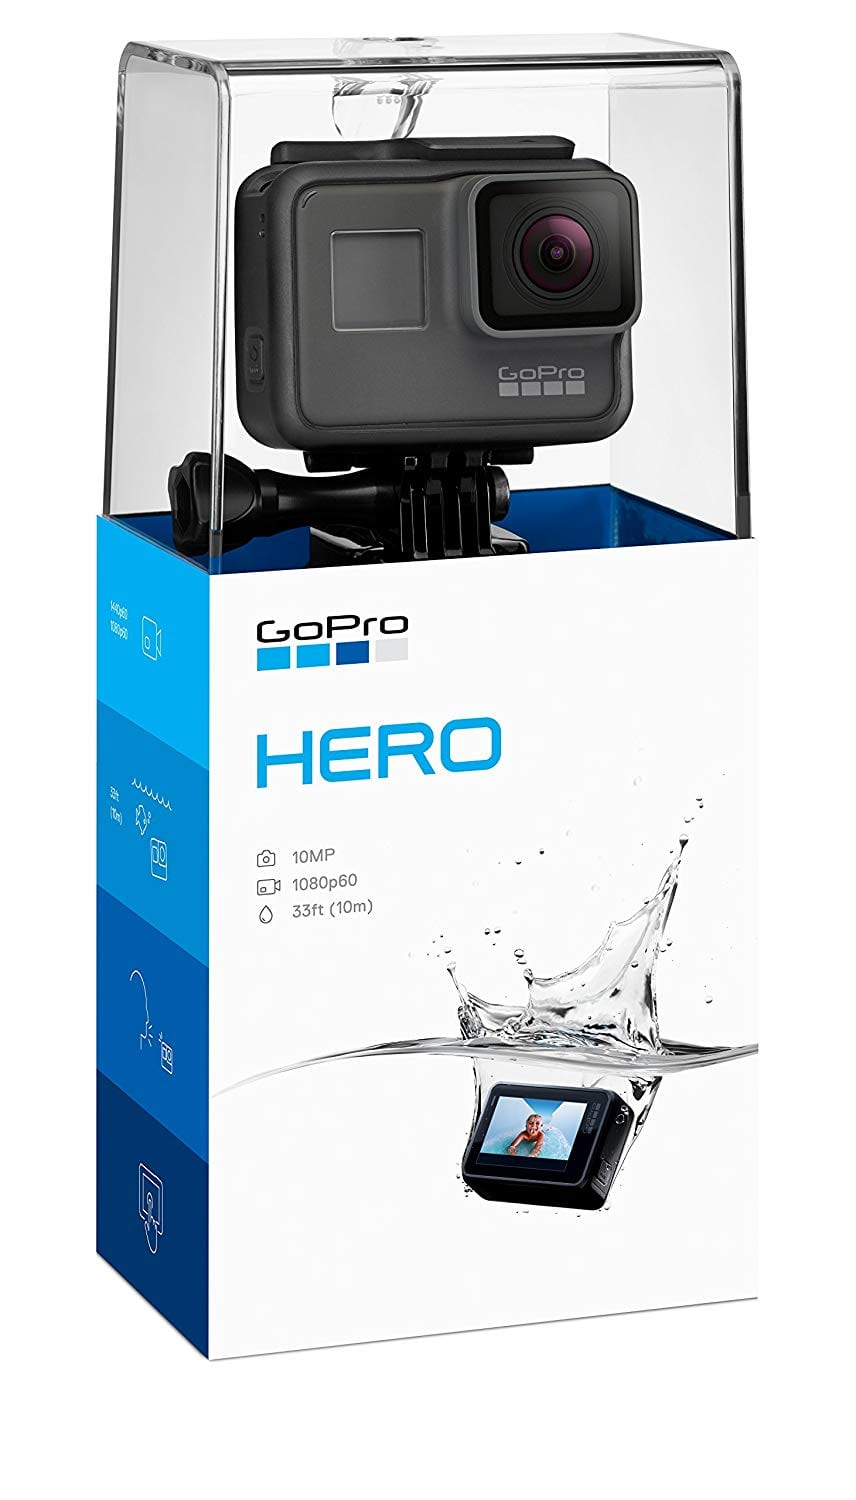 GoPro Hero HD 1080p Waterproof Action Camera 2018 $154